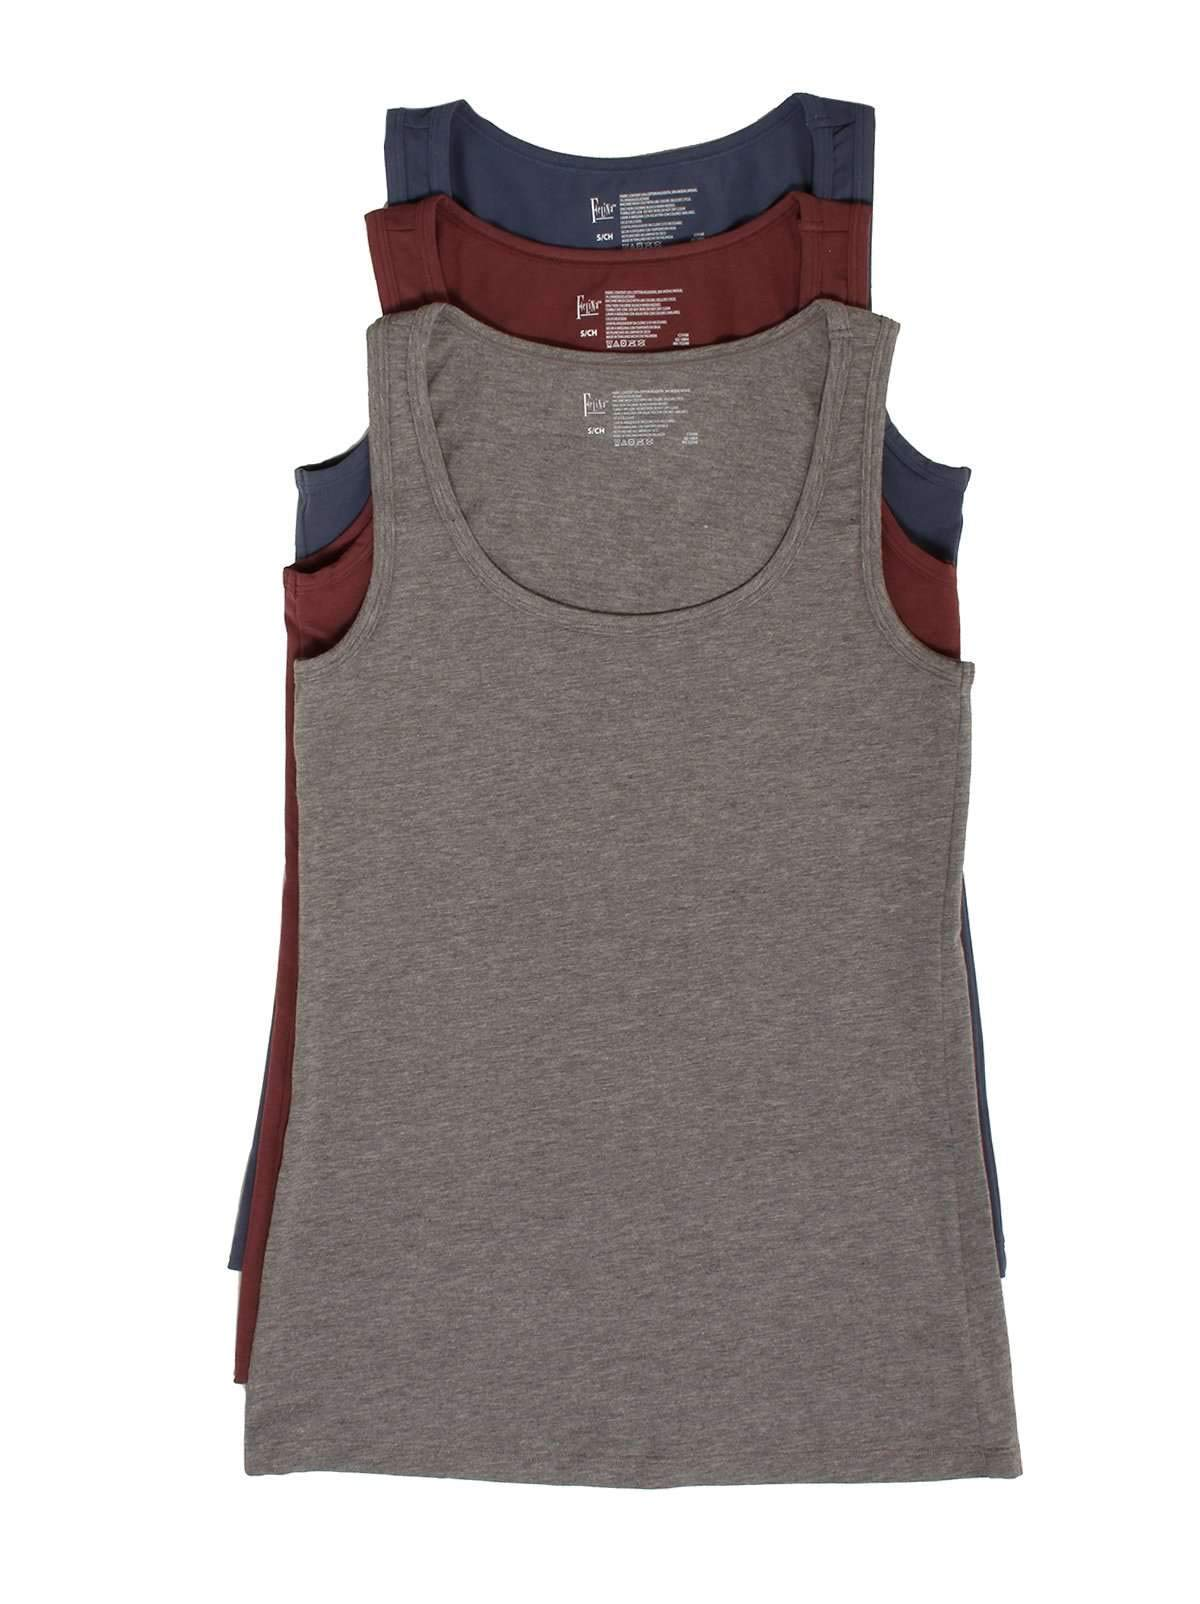 Felina | Cotton Stretch Layering Tank Top 3 | Gray Plum Vintage Indigo | Small